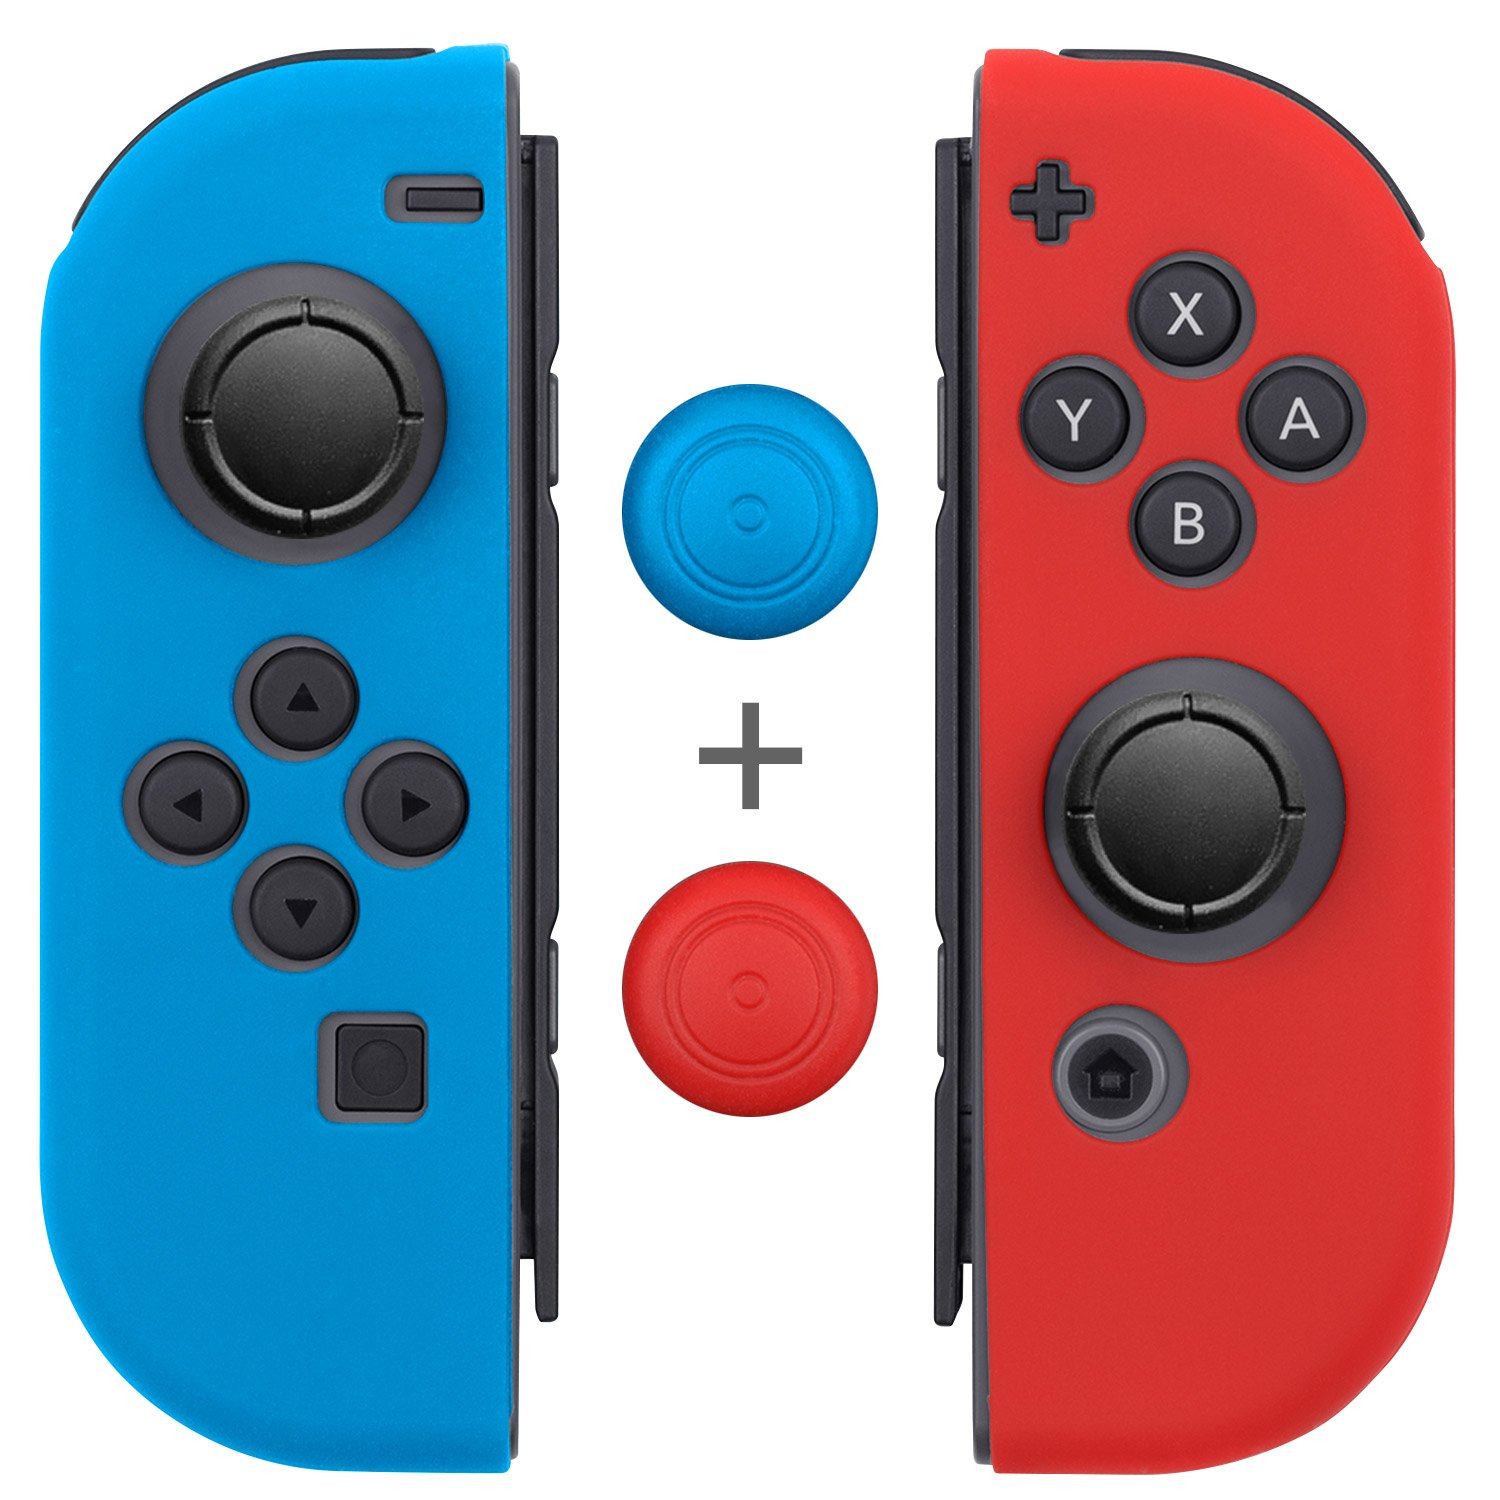 Joy Con Grips (1 Pair / 4pcs), Fosmon Anti-Slip Silicone Joy Con Gel Guards Skin Cover L/R with Thumb Stick Caps for Nintendo Switch Joy Con Controller (Blue/Red)